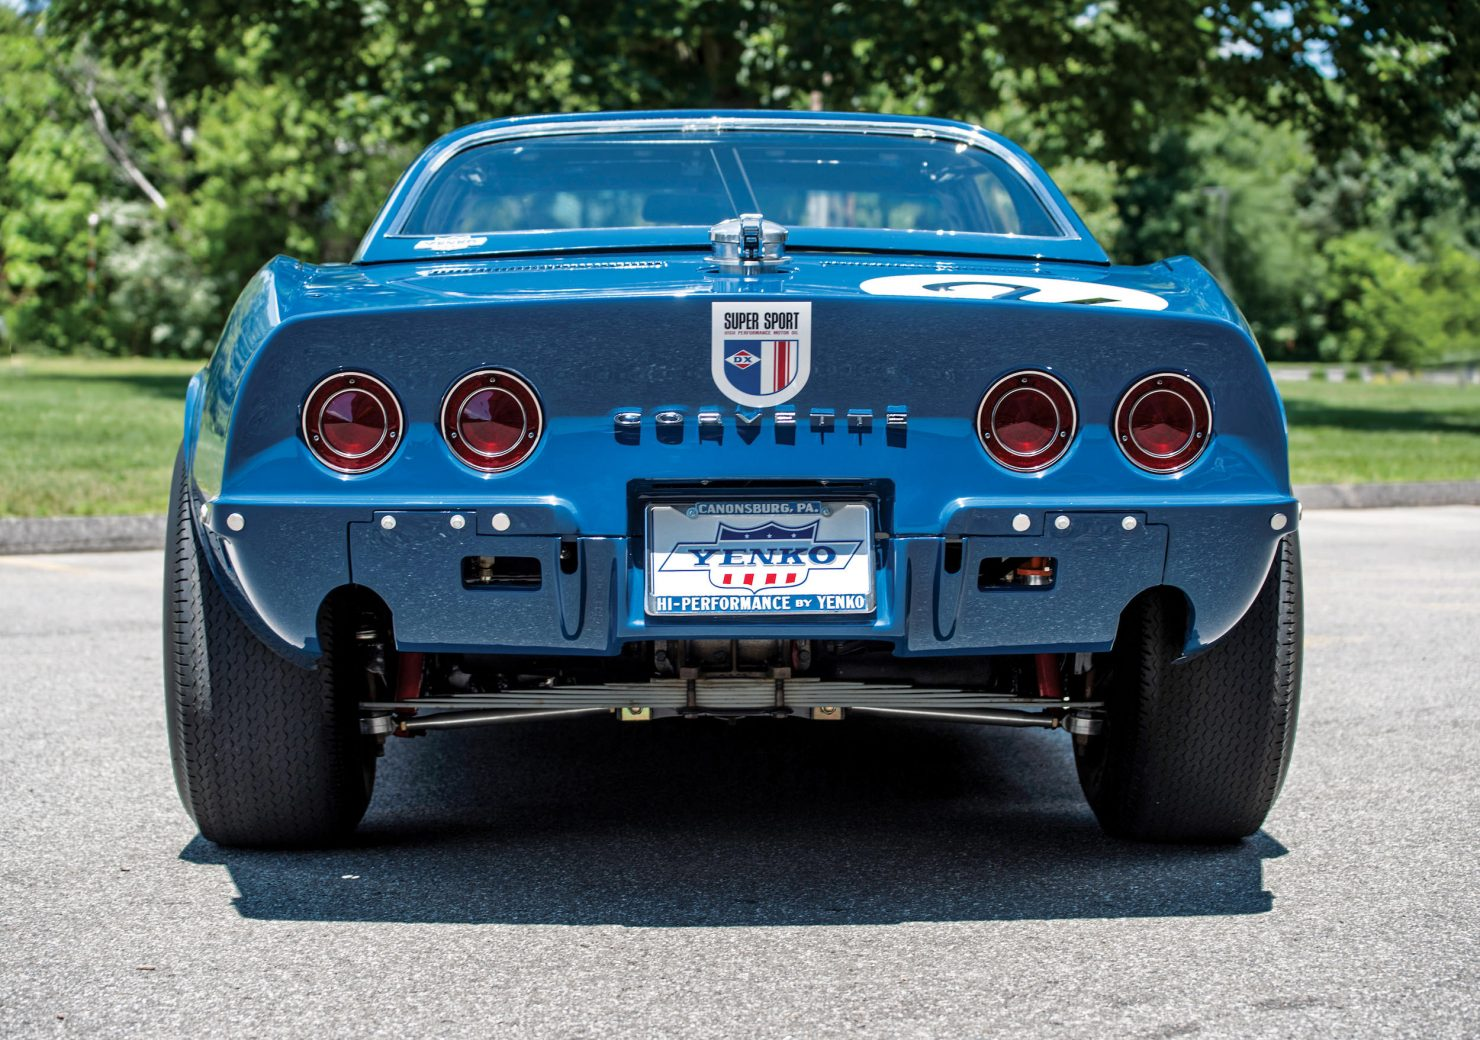 Chevrolet Corvette L88 5 1480x1040 - 1968 Chevrolet Corvette L88 Sunray-DX Race Car